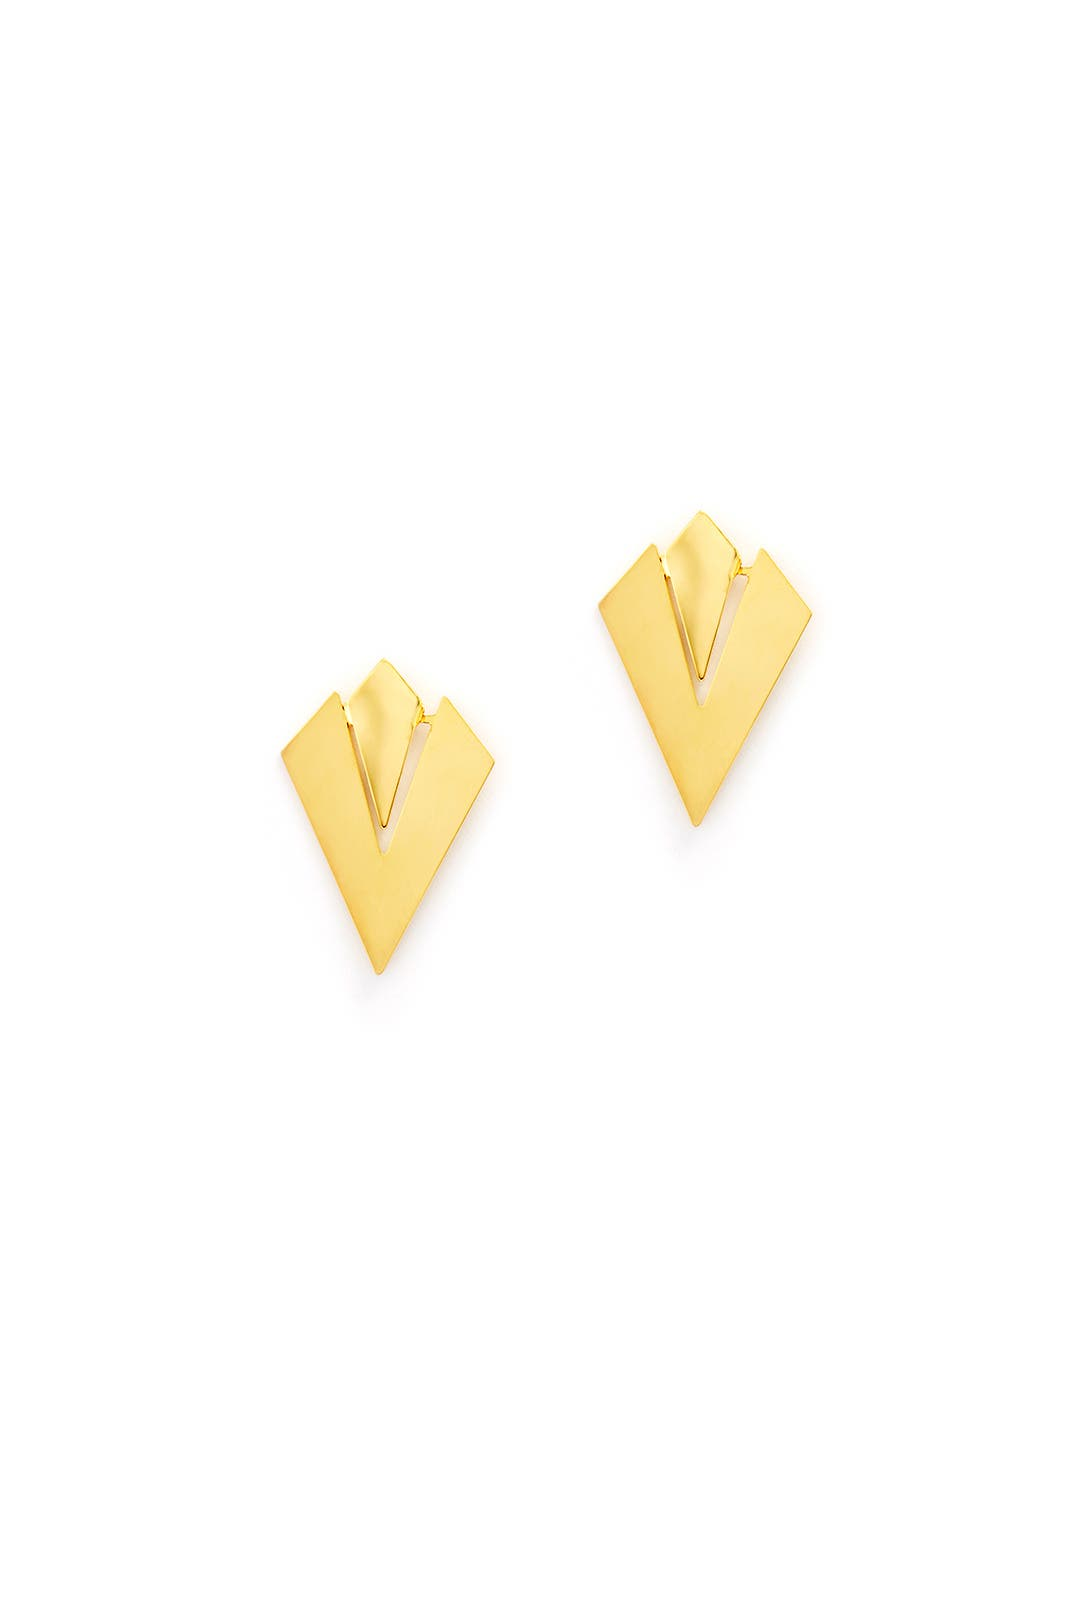 On the Verge Earrings by AV Max